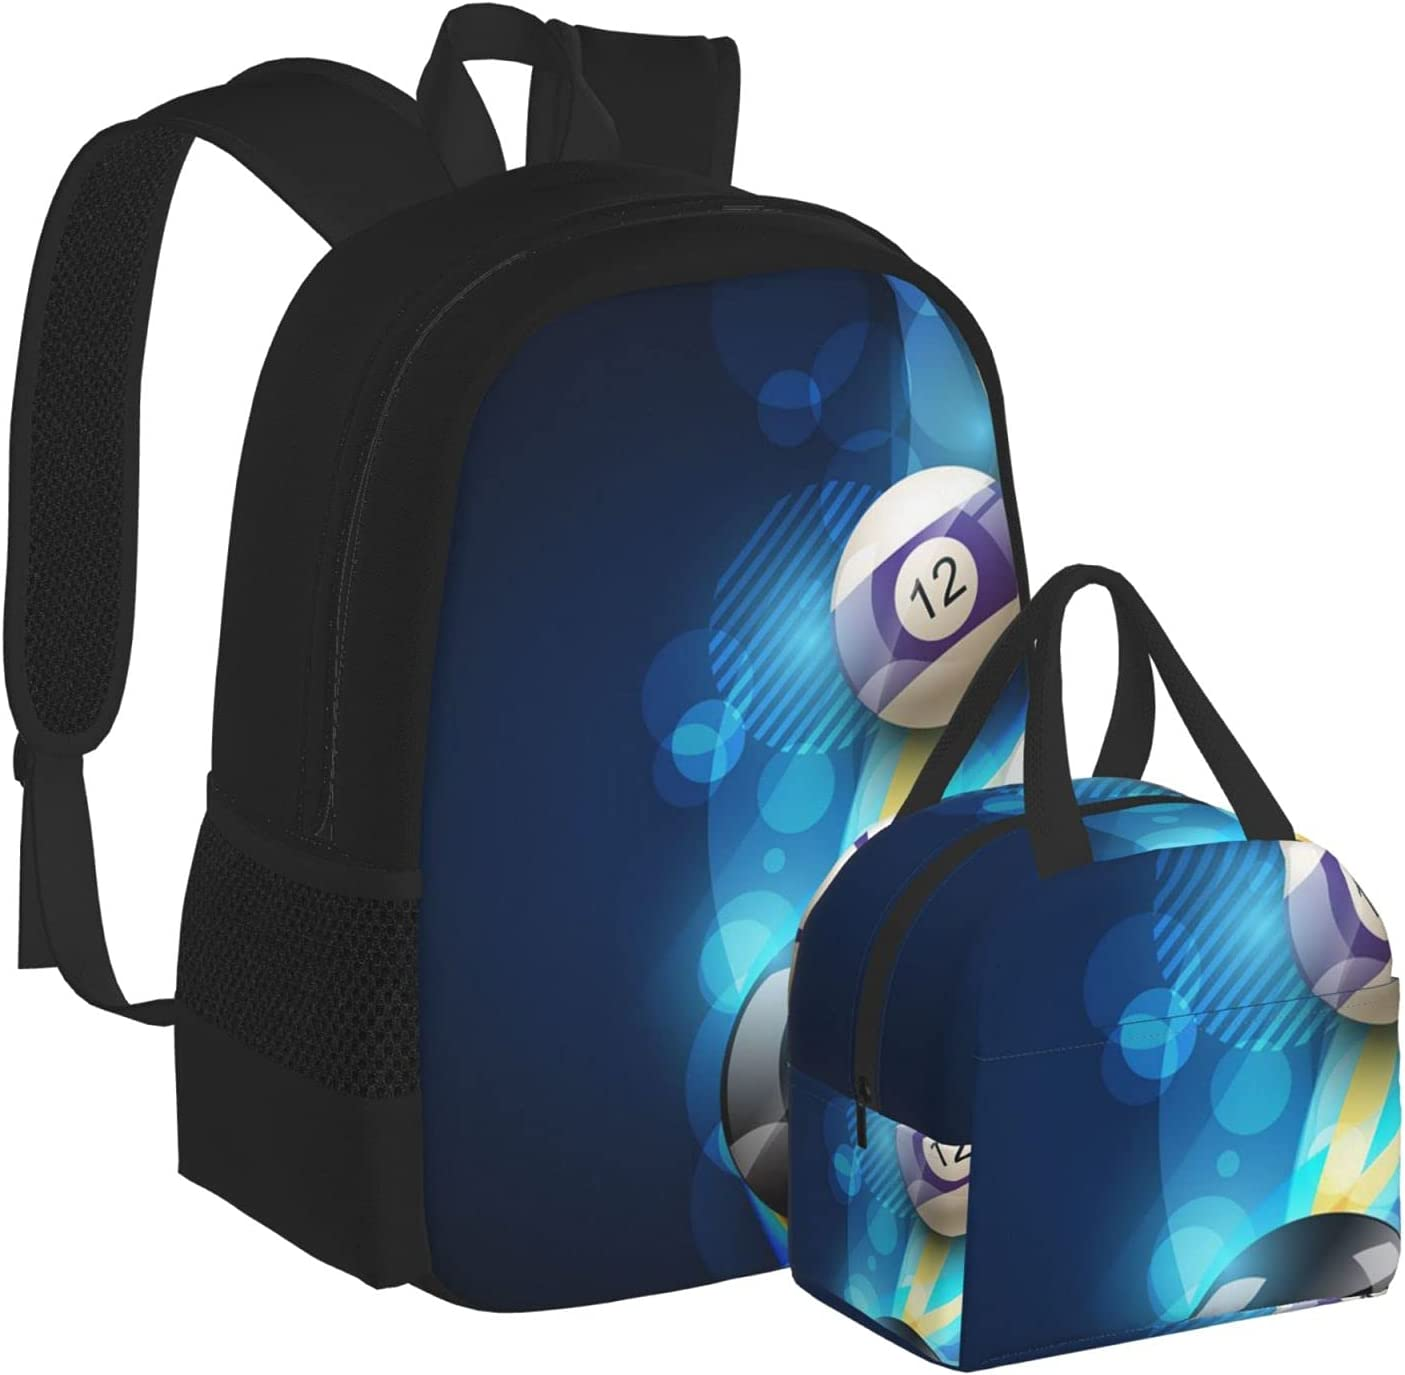 Billiard Pool Balls Special Campaign Snooker Contest Schoolbag Free shipping For Middl Backpack